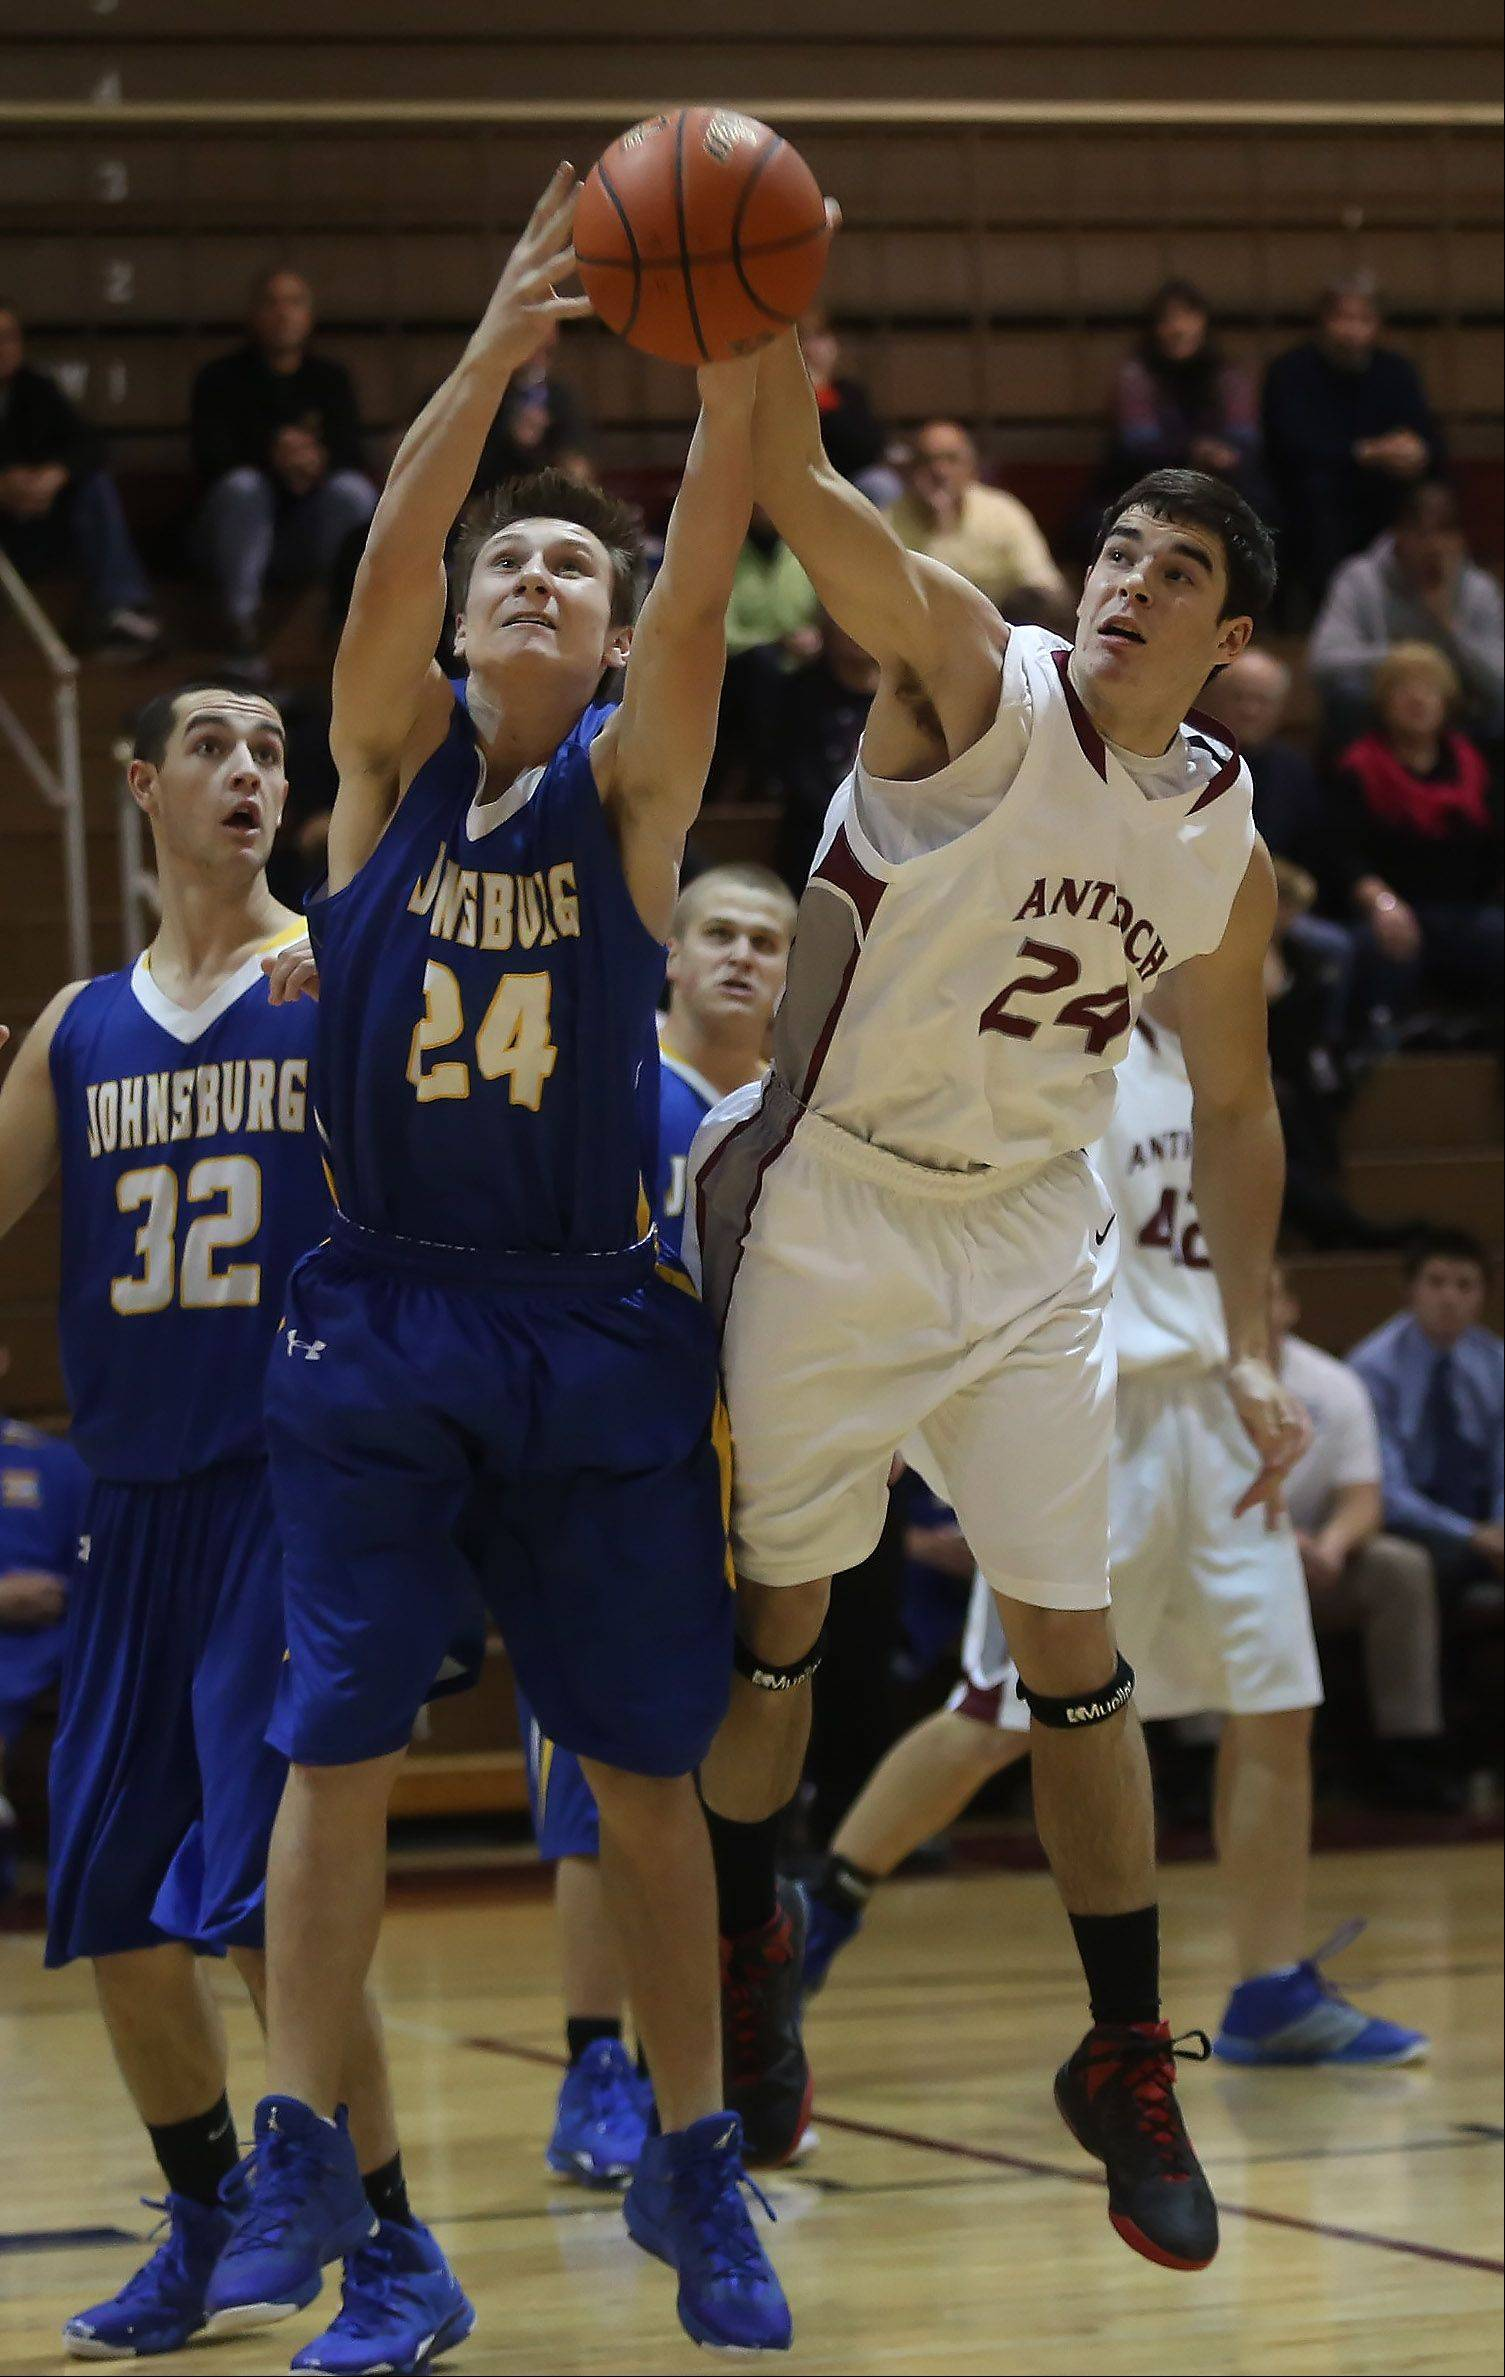 Antioch forward Kyle Gofron battles Johnsburg forward Alec Graef for a rebound.